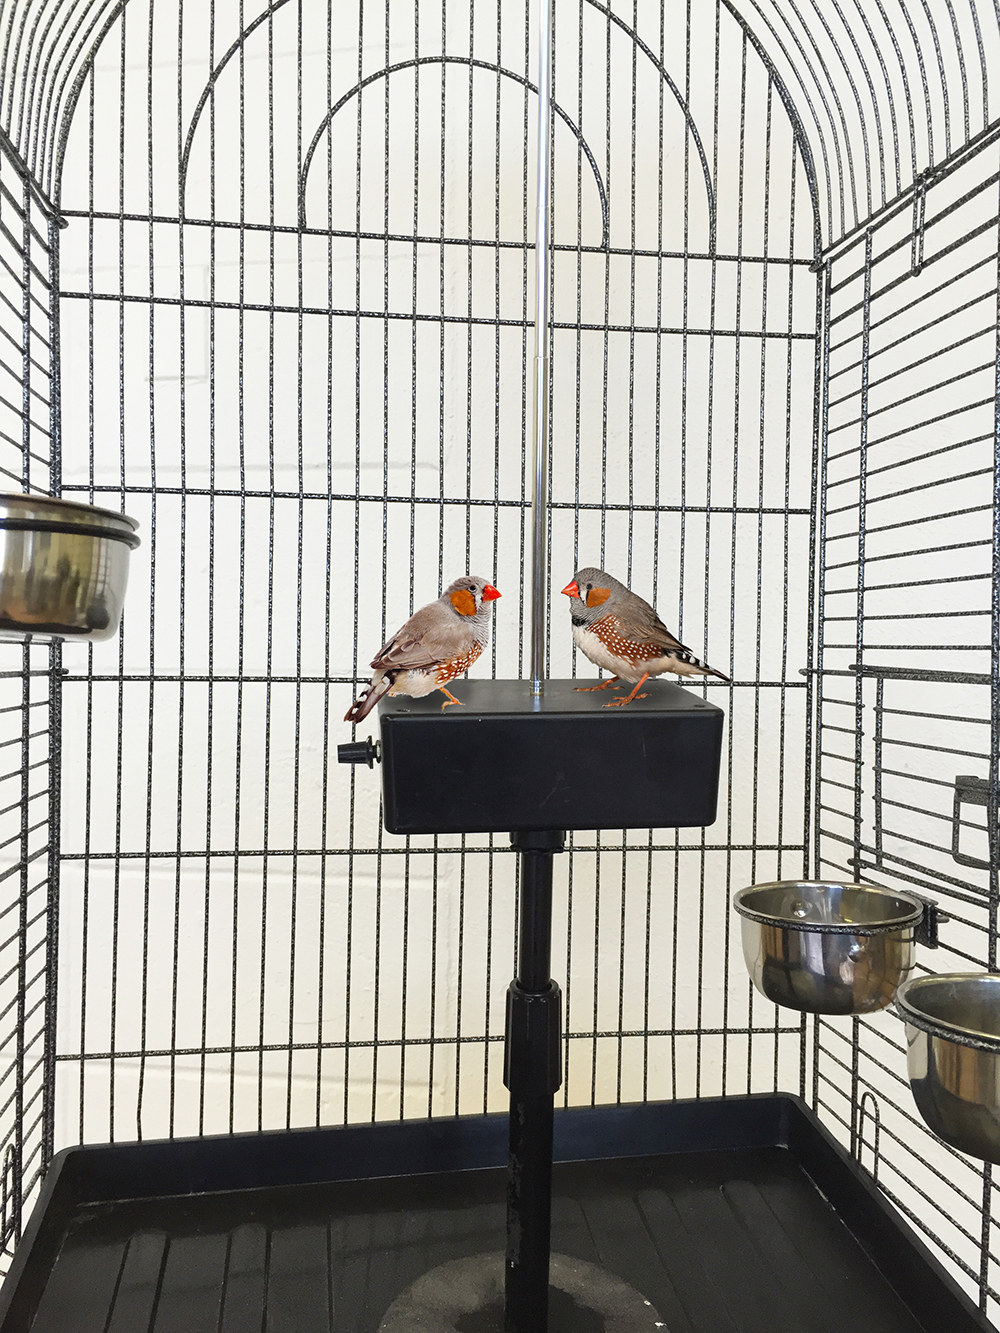 WhileContemplatingTheir Fate in the Stars, the Twins Surround the Enemy, Installation with two finches, cage and theremin, 2003